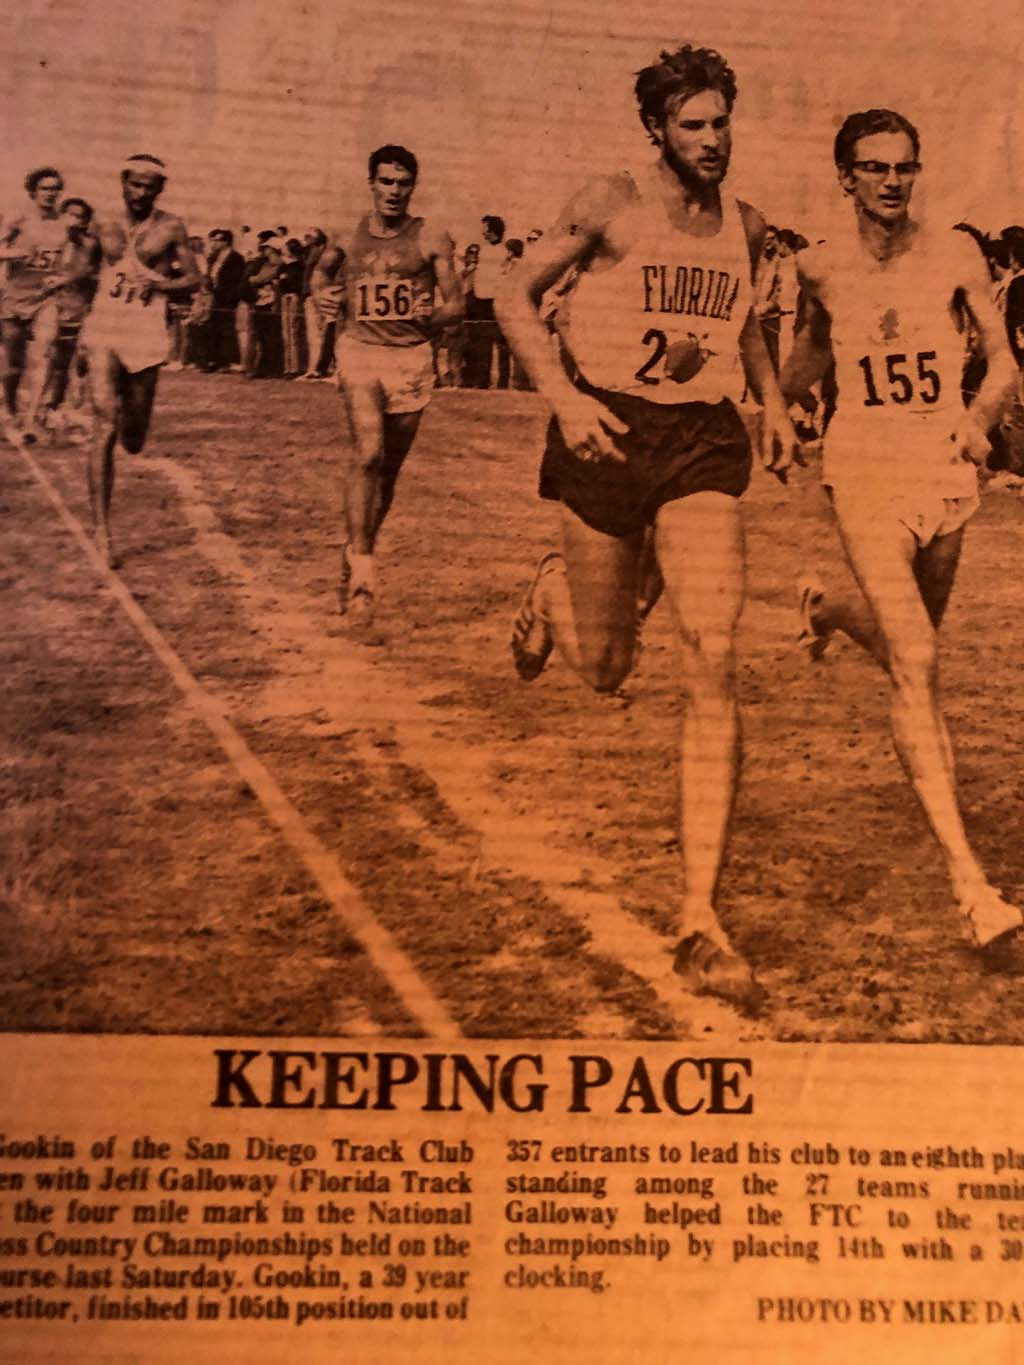 Bill Gookin (front right) battles world-class distance runners at a national cross country championships.